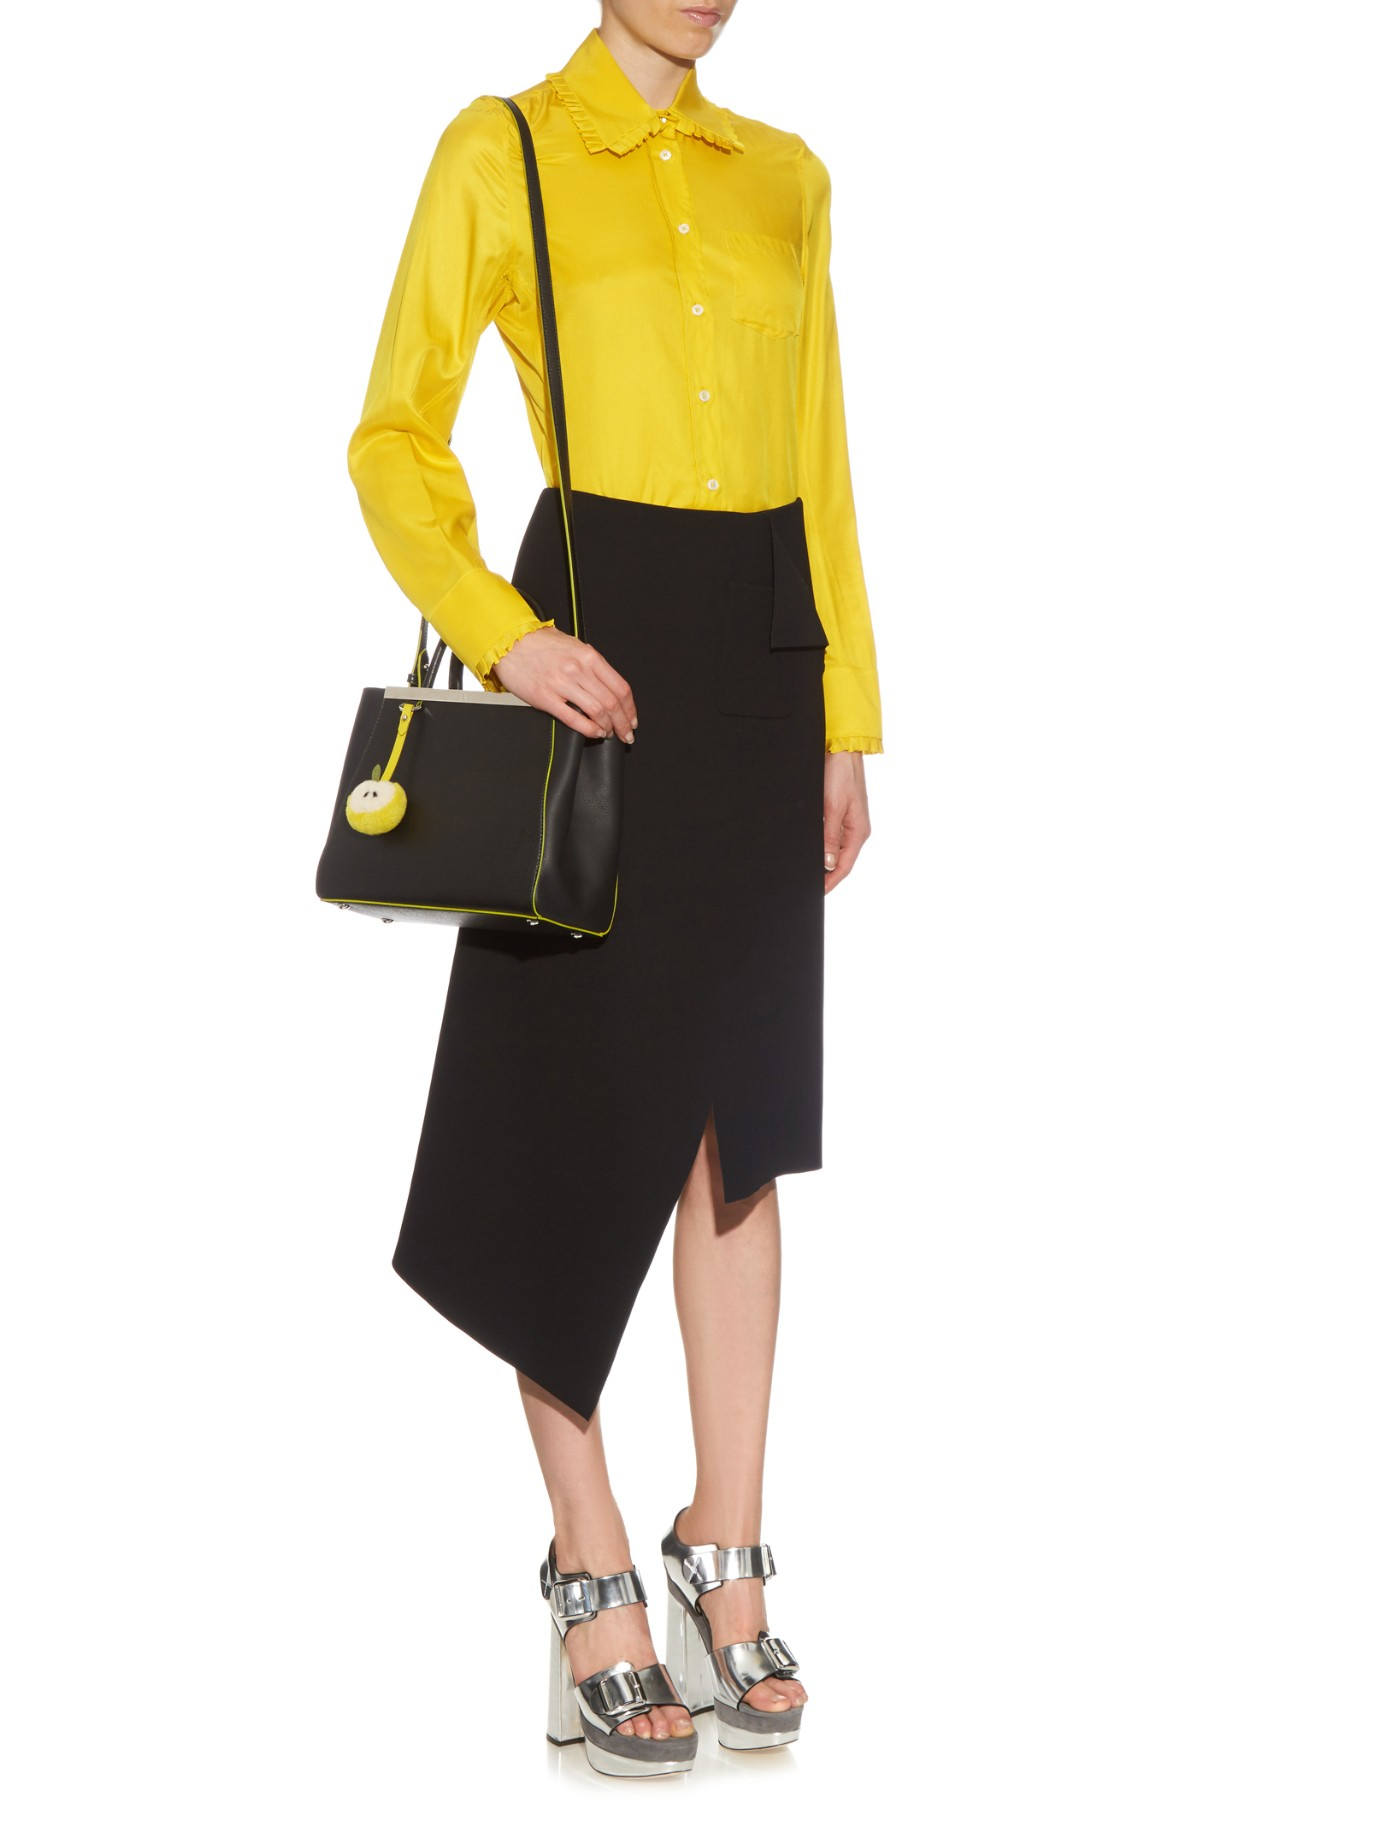 Petite In Lyst 2jours Leather Fendi Black Tote ZrZHqTzKy